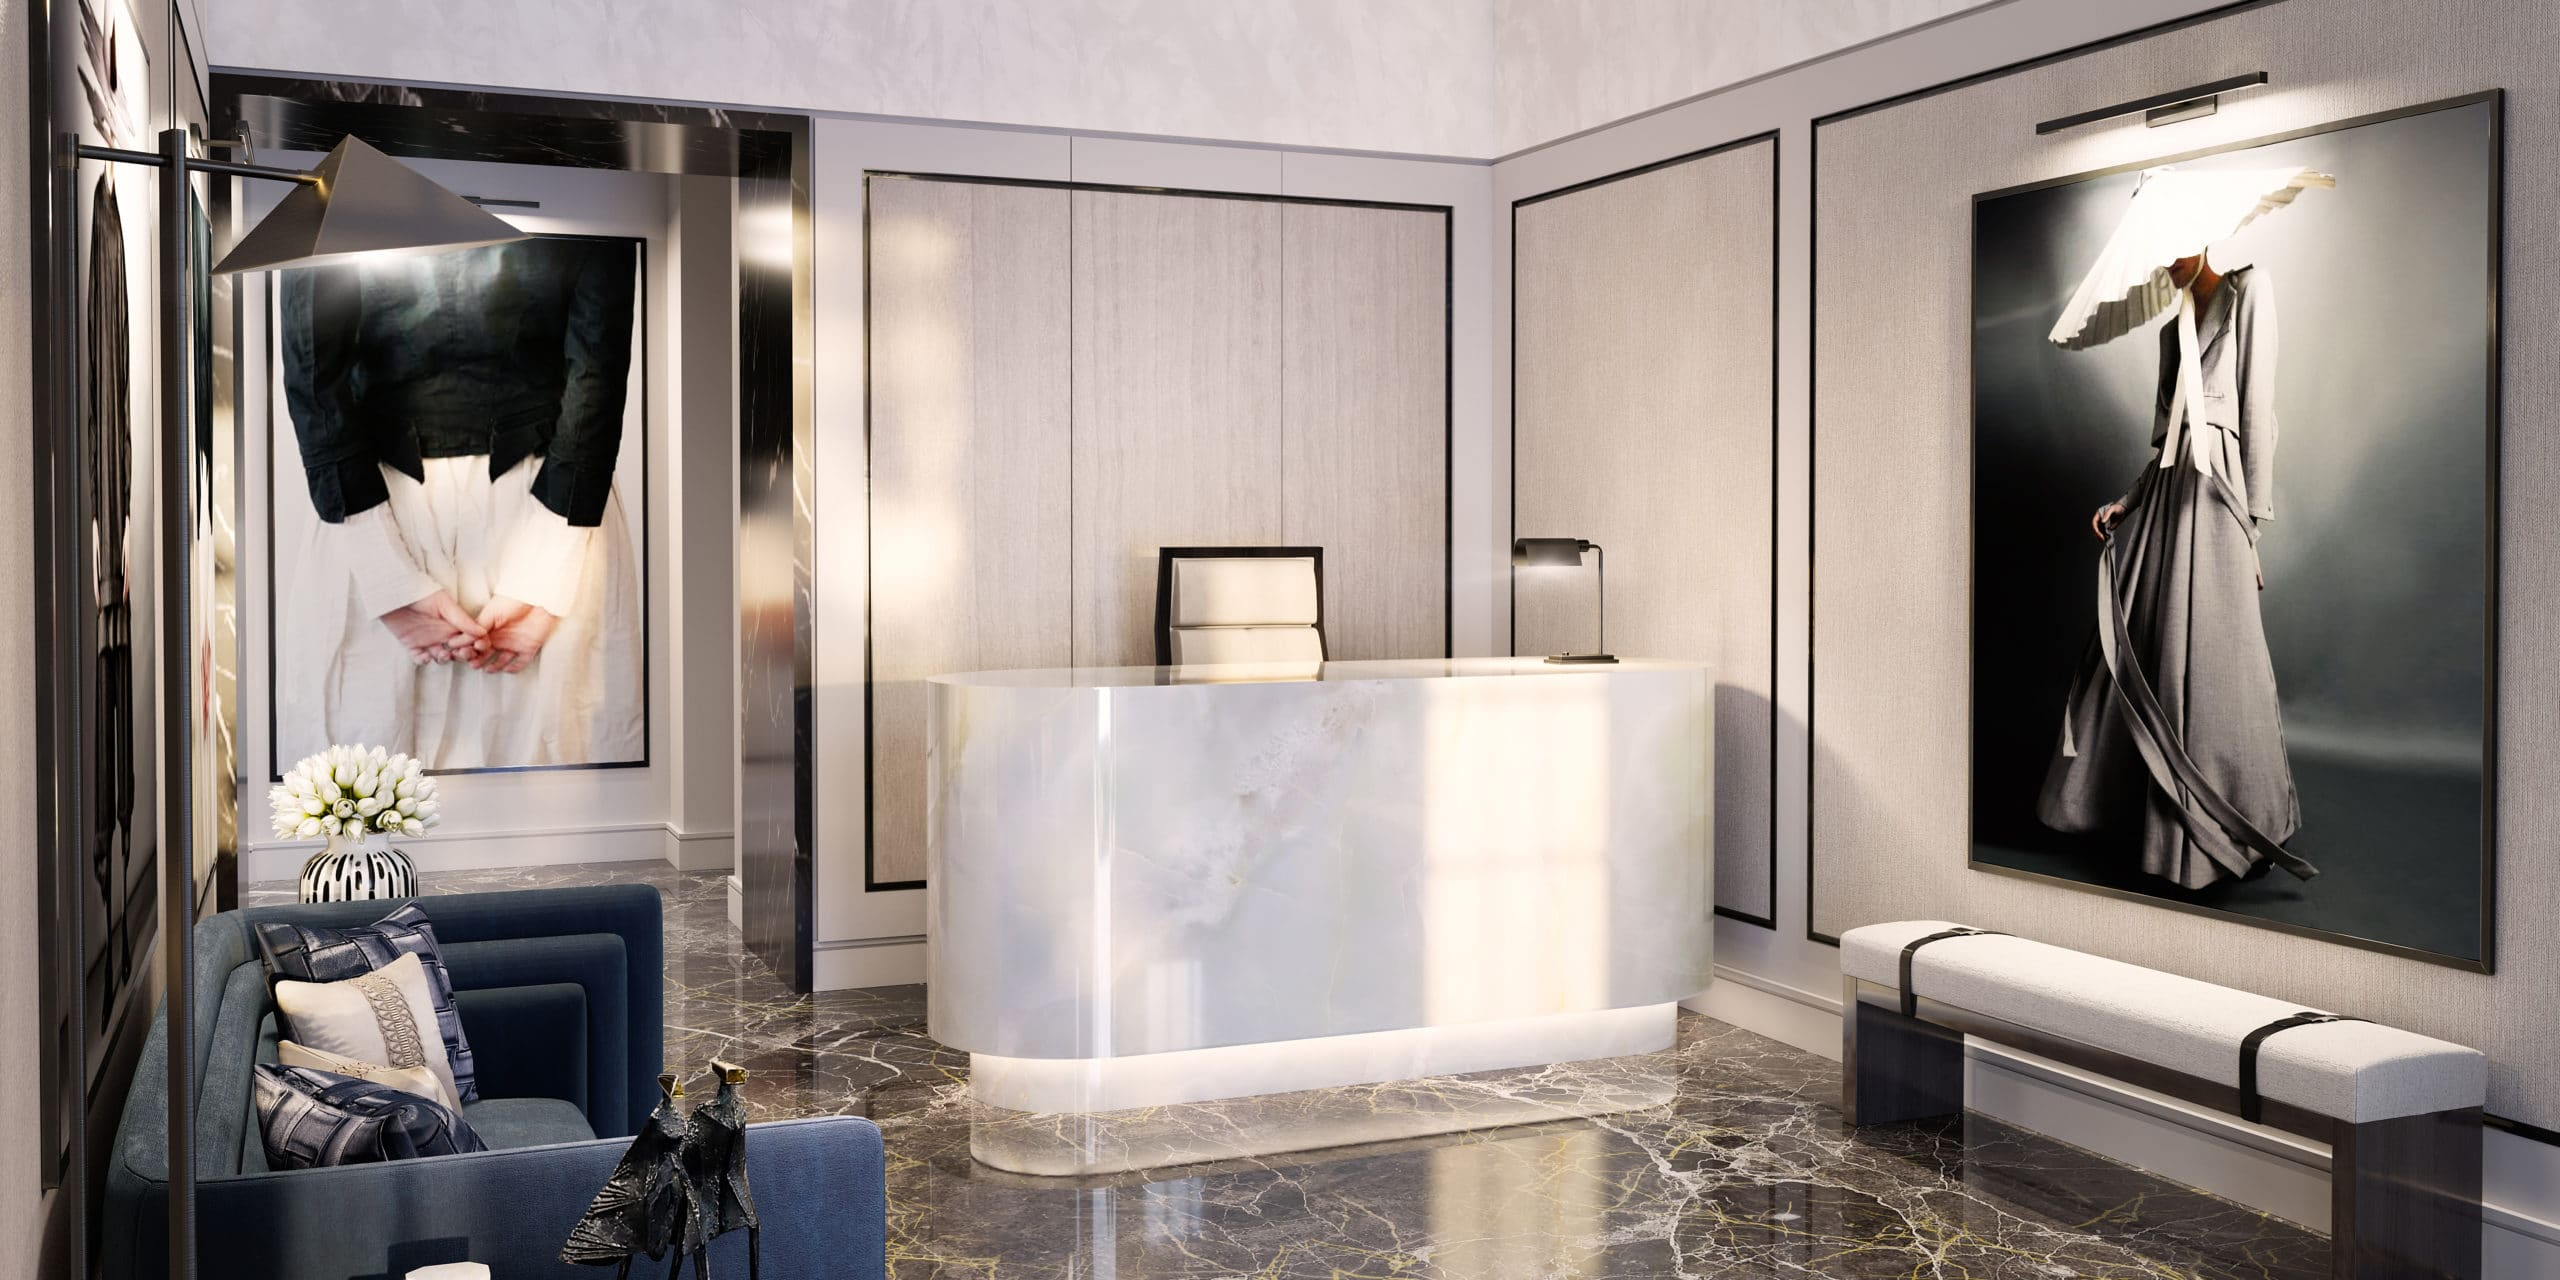 Reception at 82 Mount Street apartments in London. White rounded reception desk, paintings on the walls and a couch.